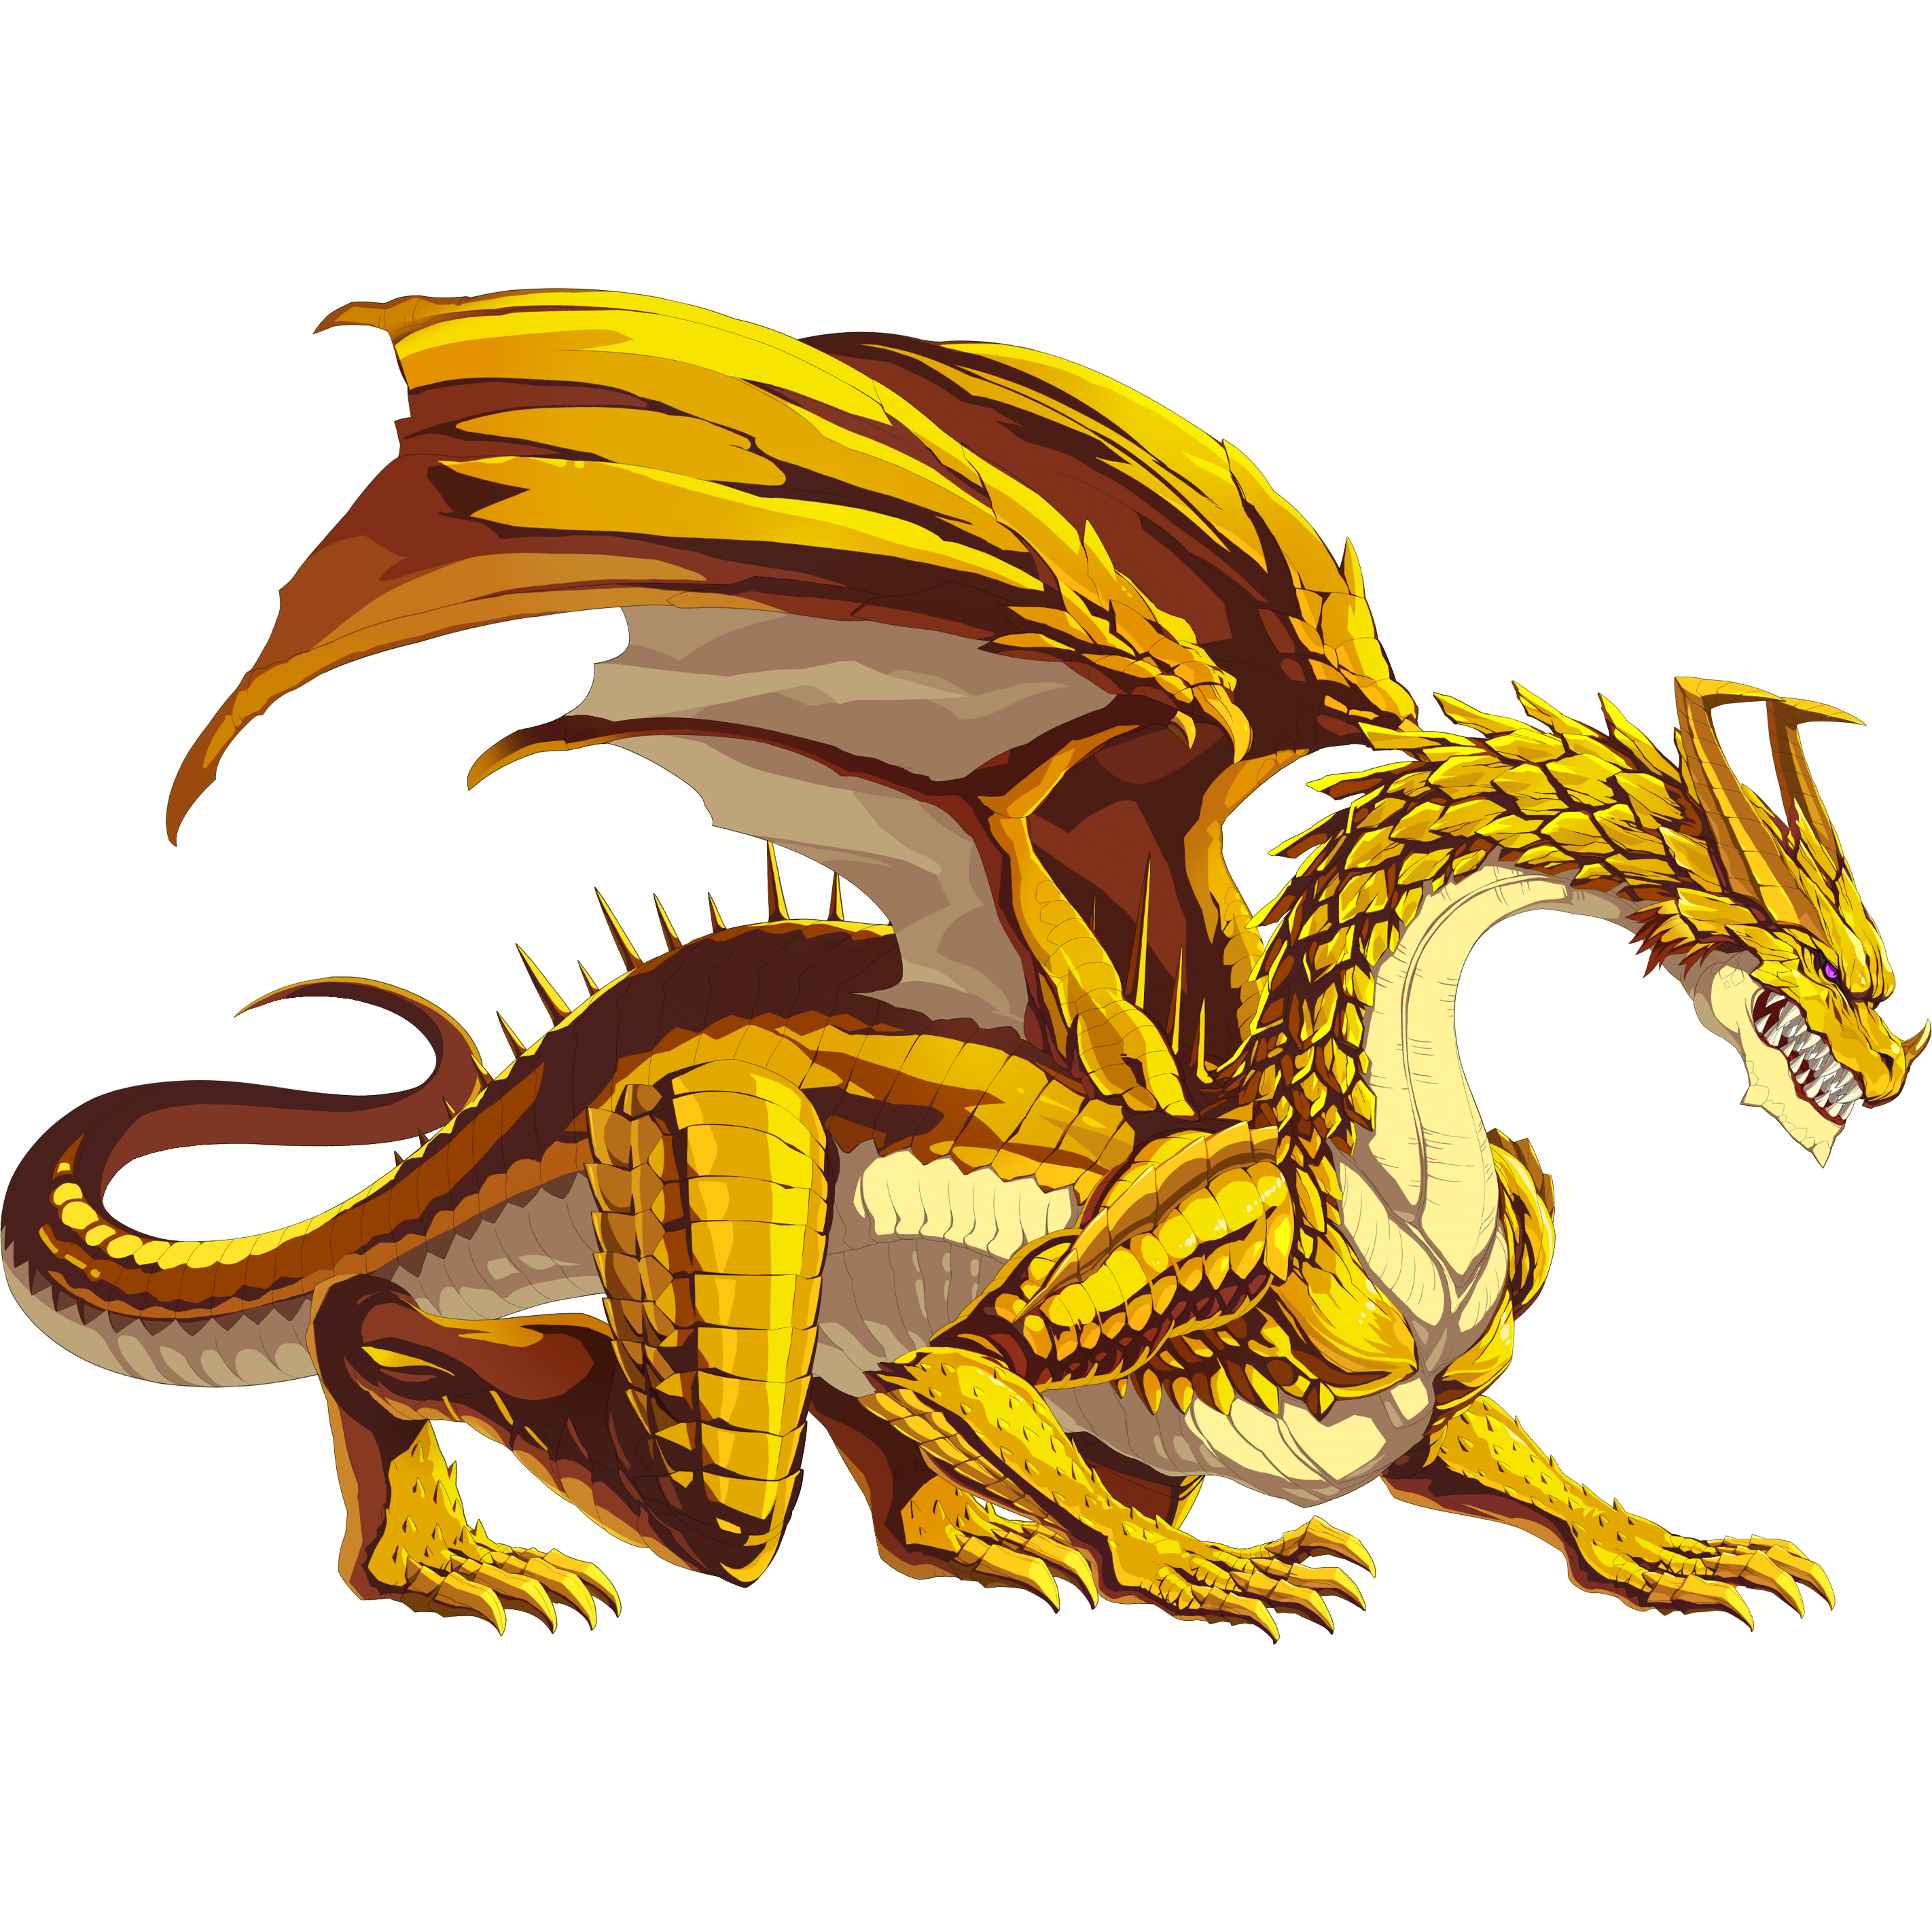 who and what is the golden dragon